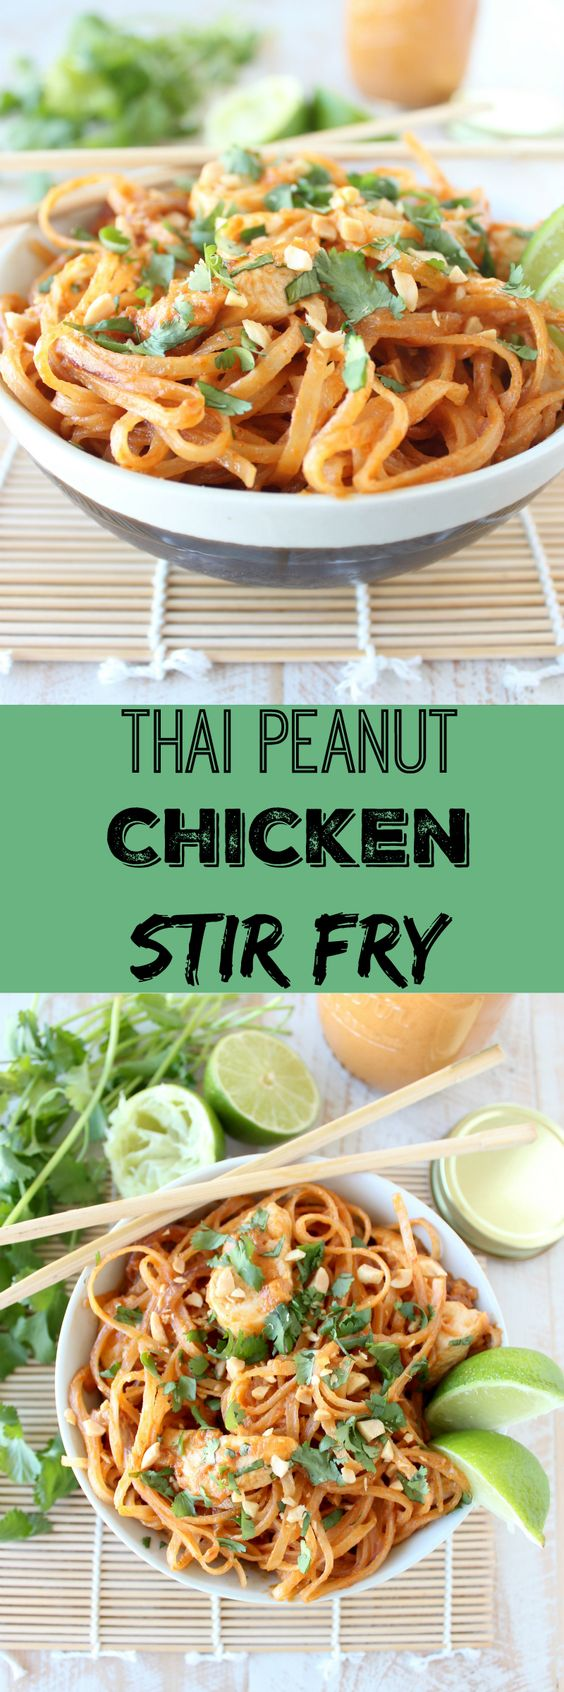 Thai peanut chicken, Peanut chicken and Chicken stir fry on Pinterest